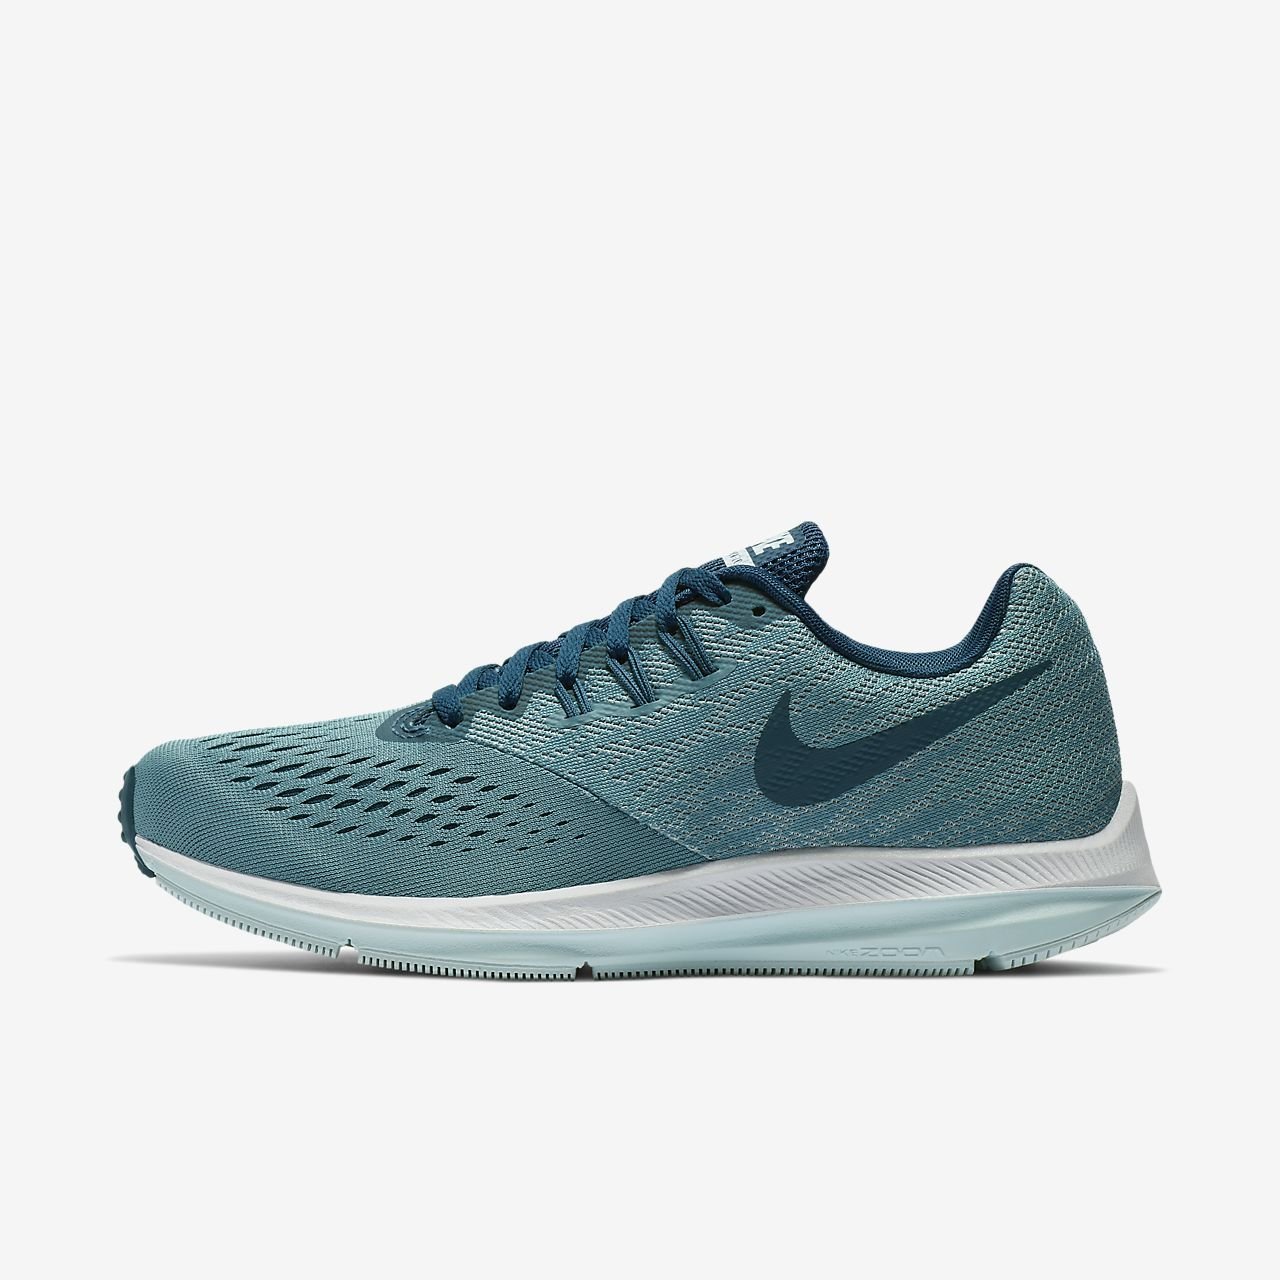 b9662028d26d5 Nike Zoom Winflo 4 Women s Running Shoe Size 12 (Blue)